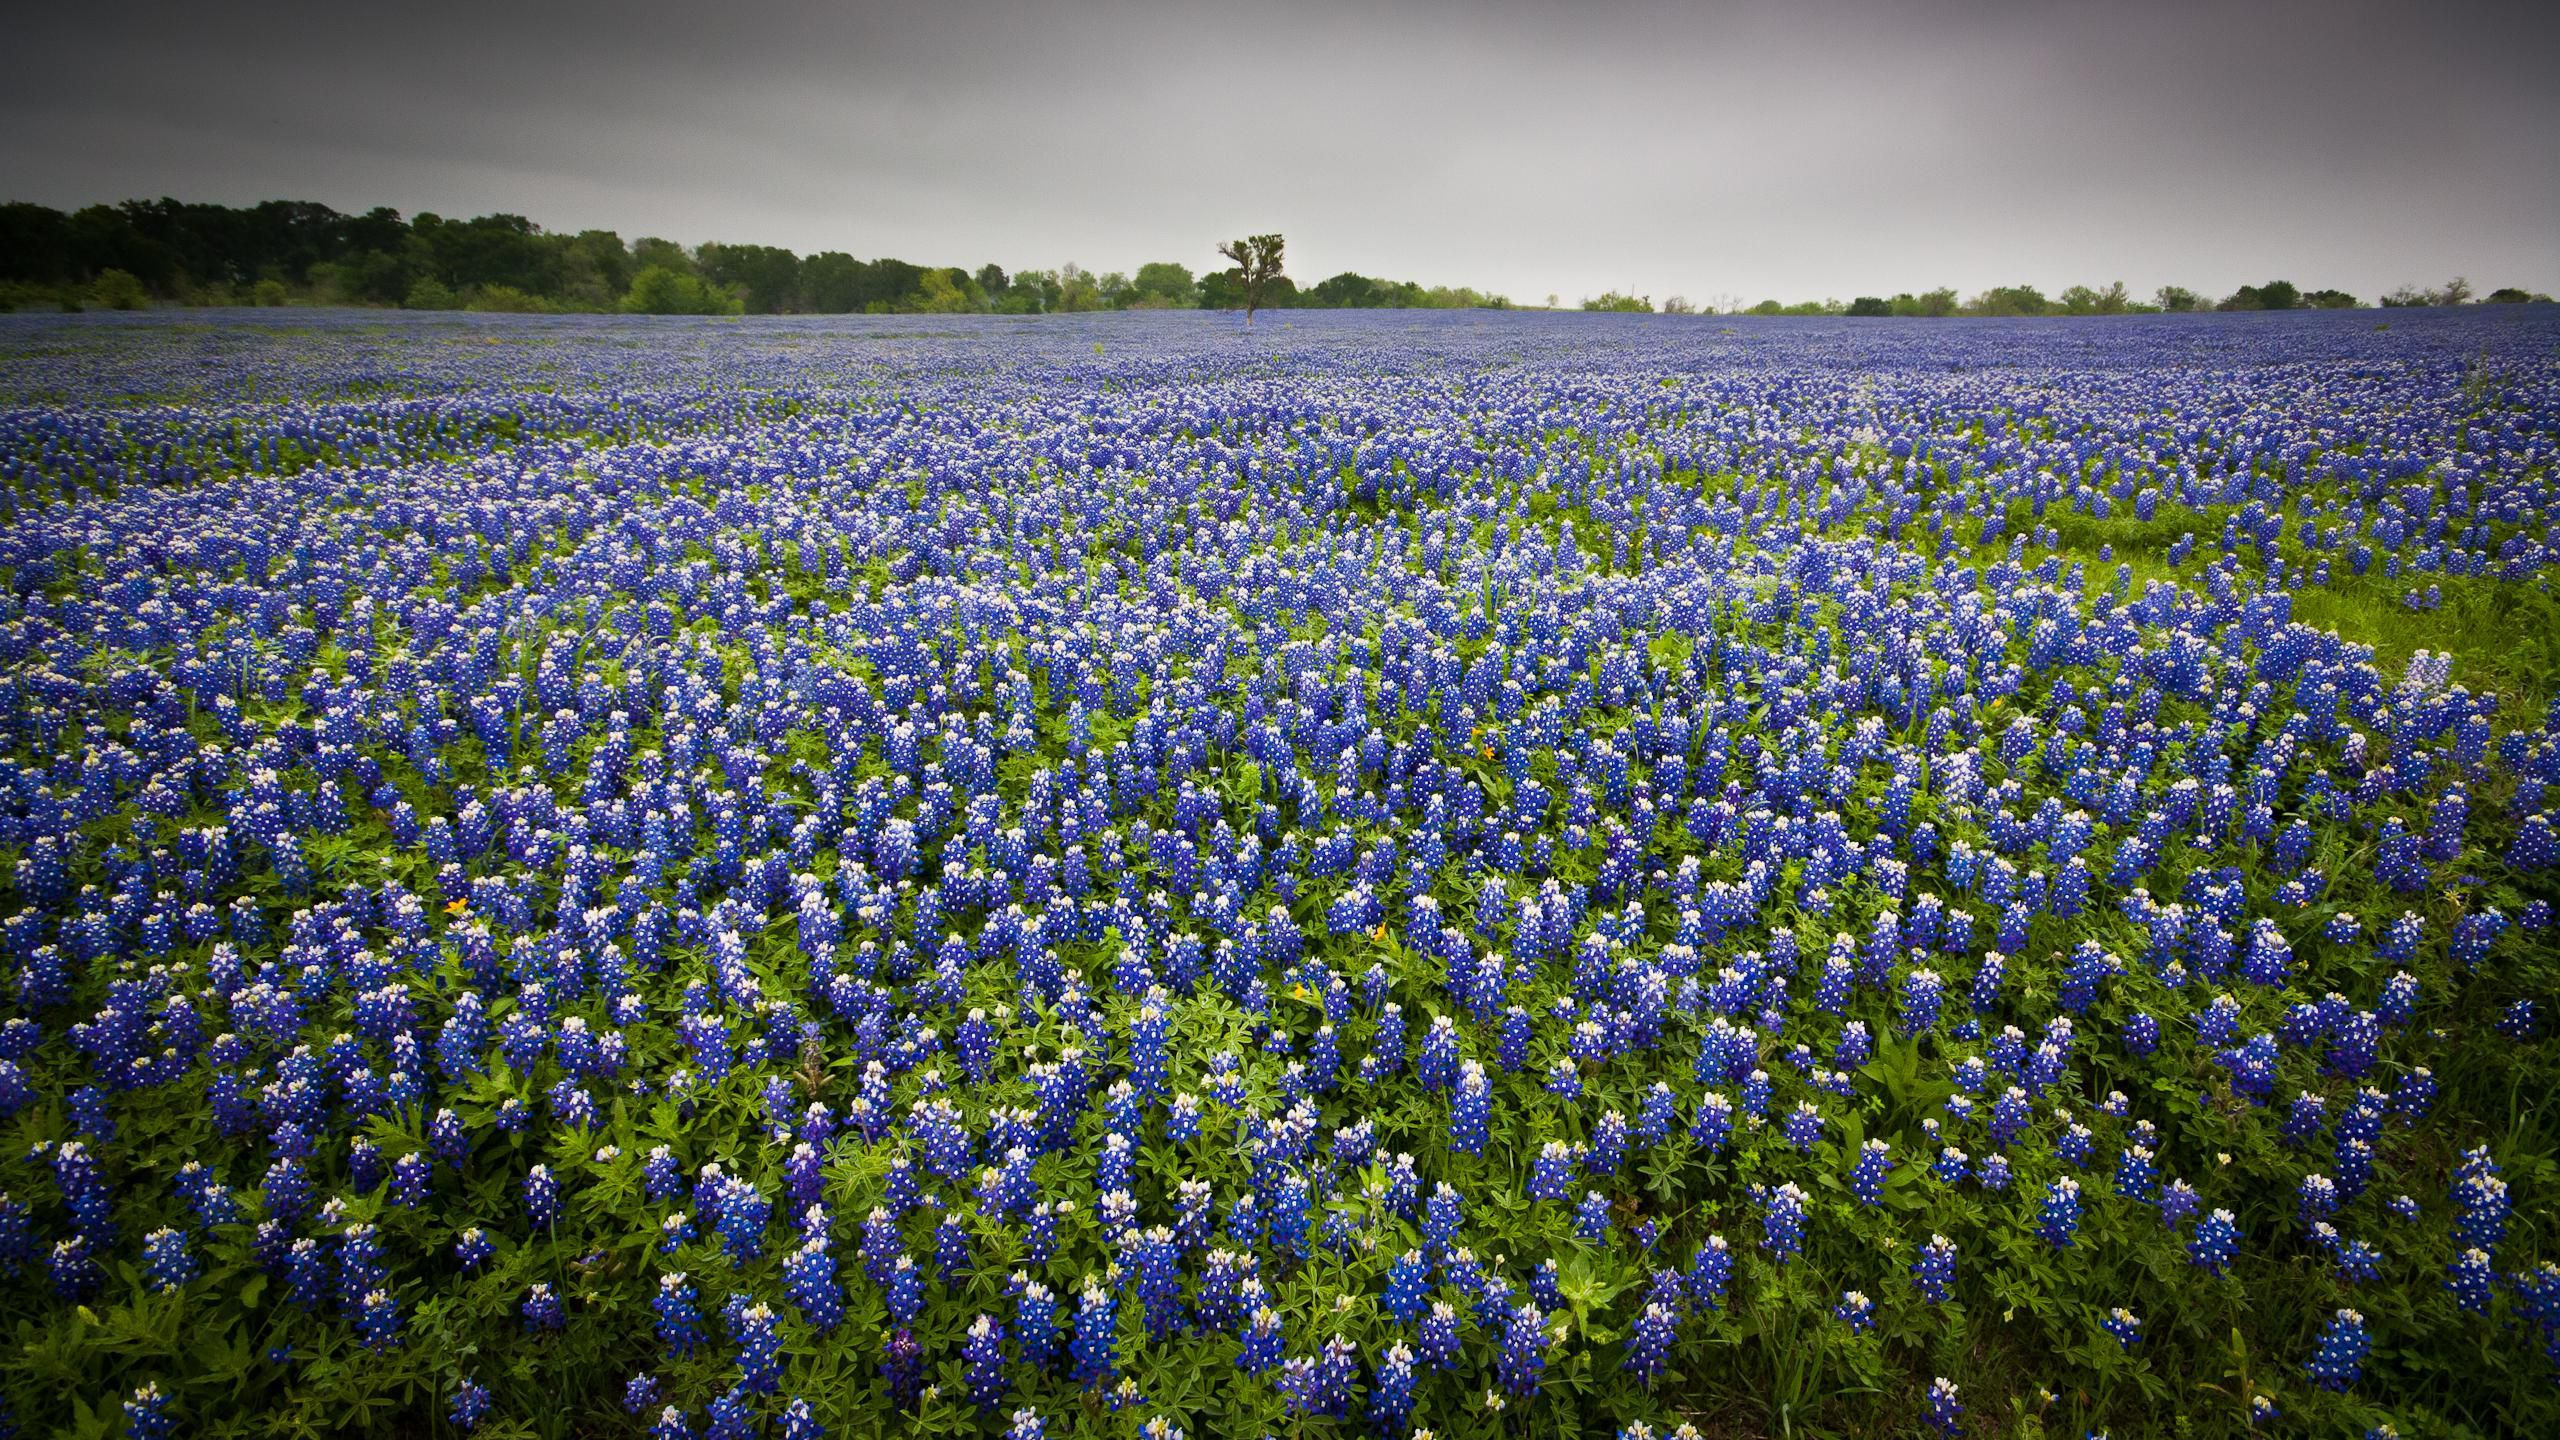 Where to See the Bluebonnets Bloom in Texas